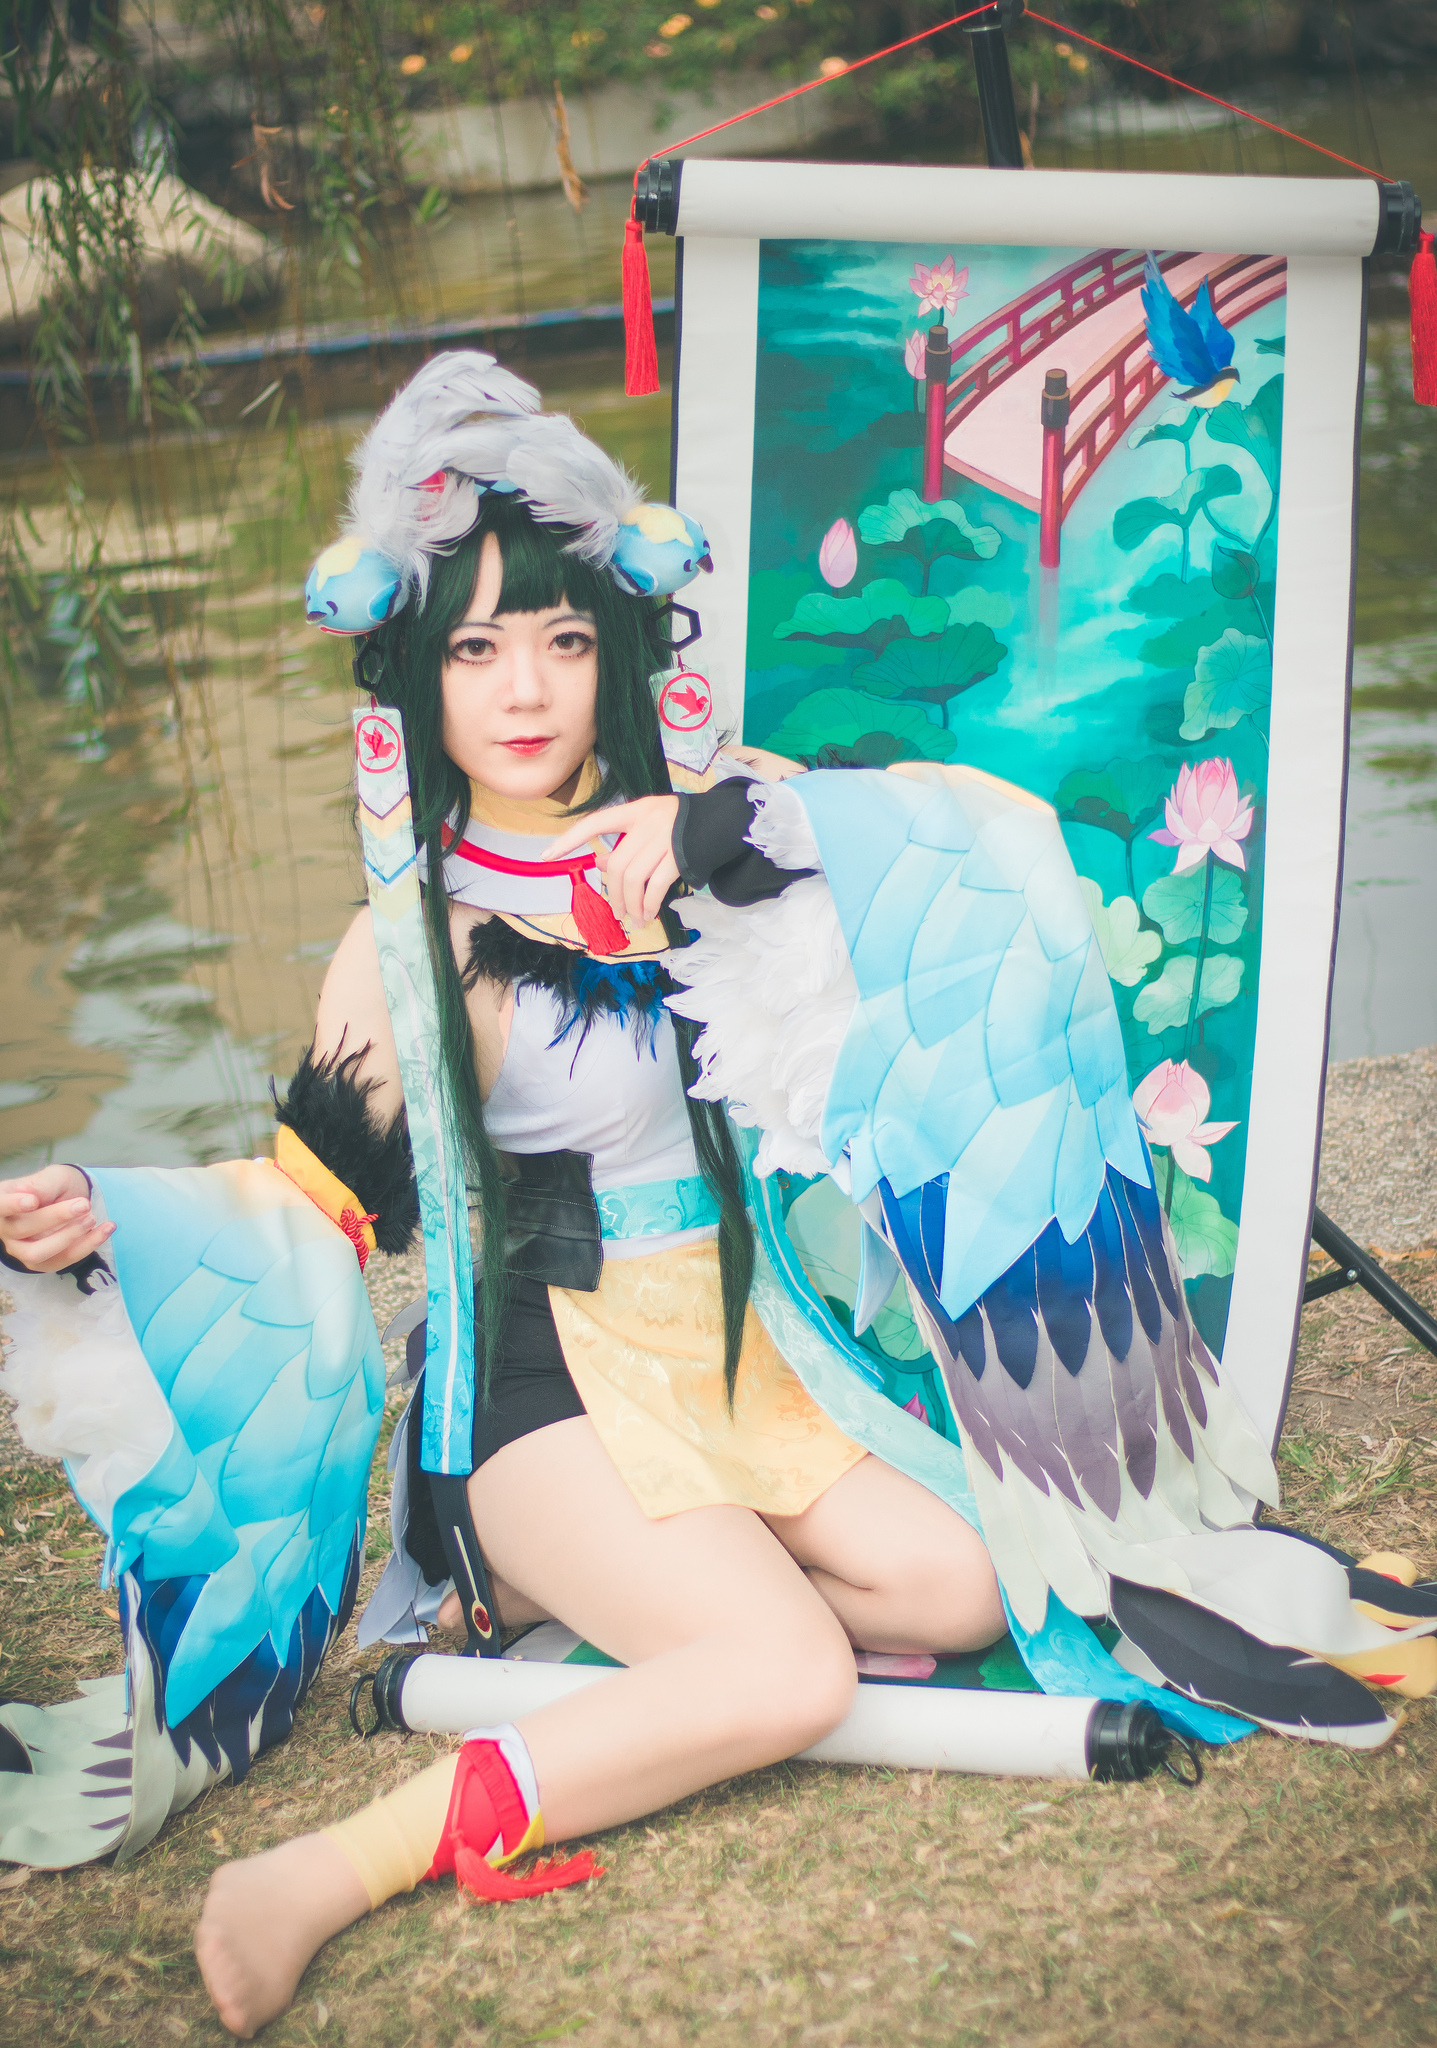 Free download high resolution image - free image free photo free stock image public domain picture -outdoor cosplay girl japanese style